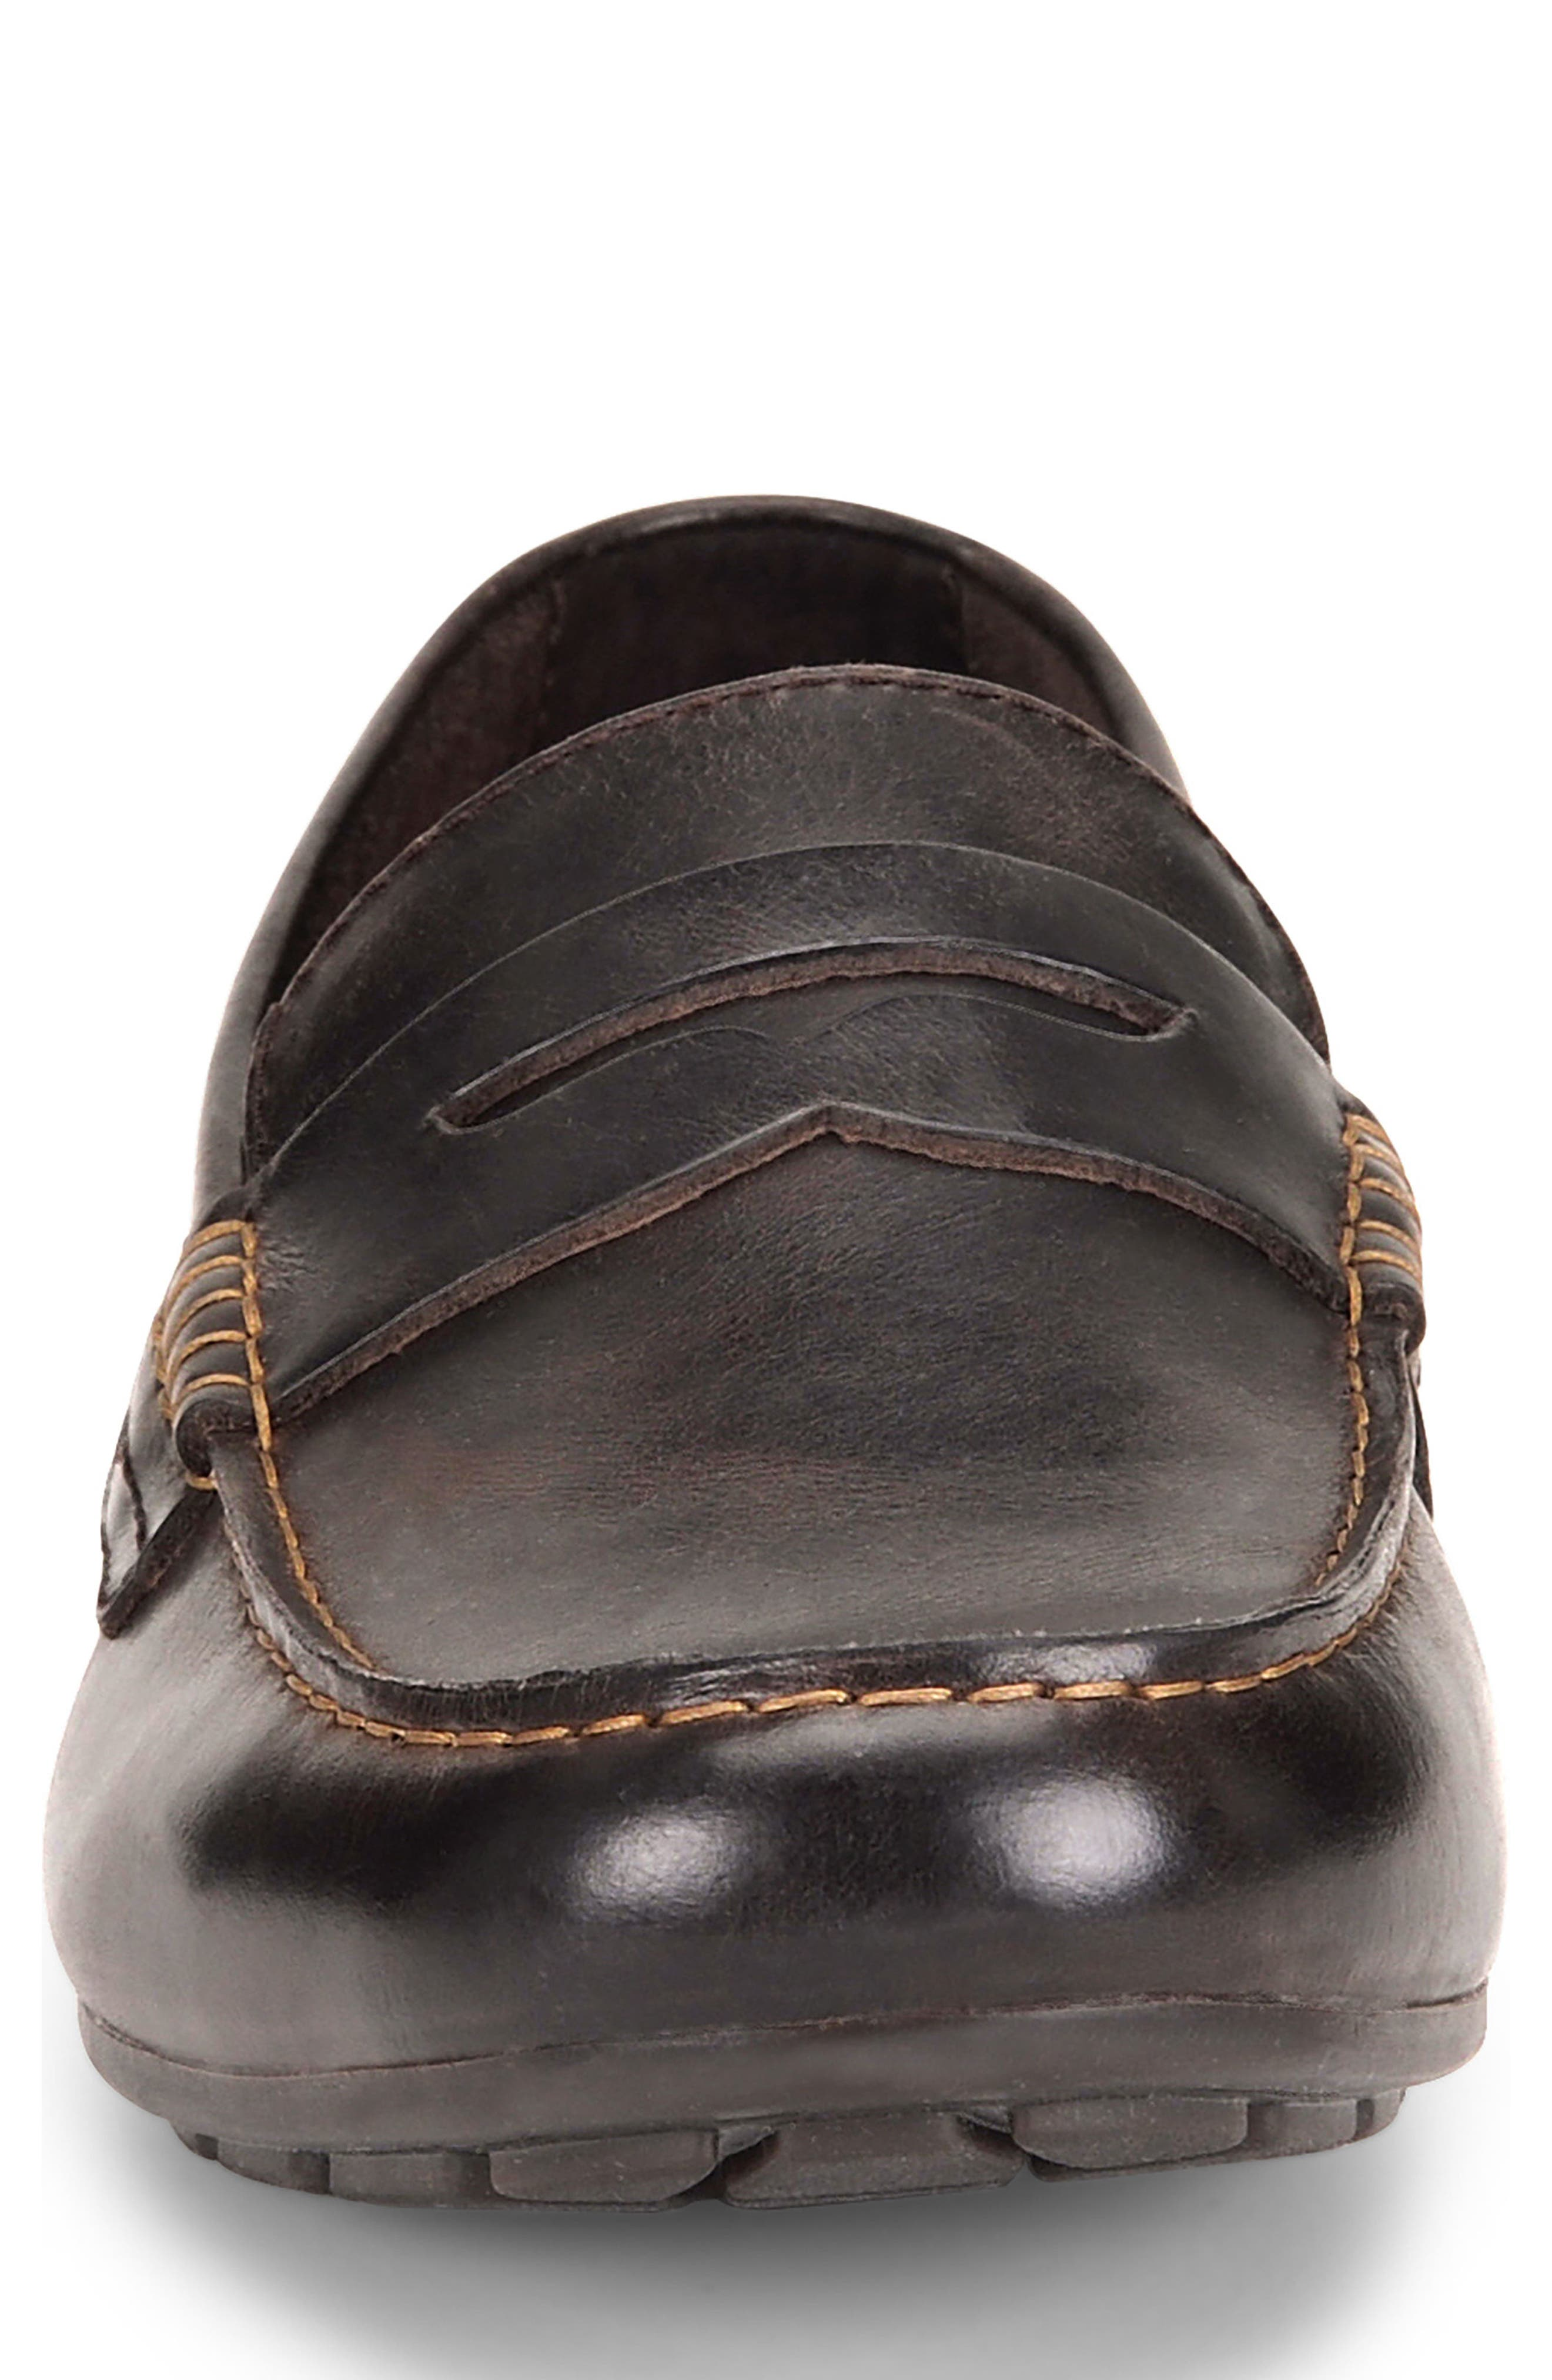 Andes Driving Shoe,                             Alternate thumbnail 4, color,                             Chocolate